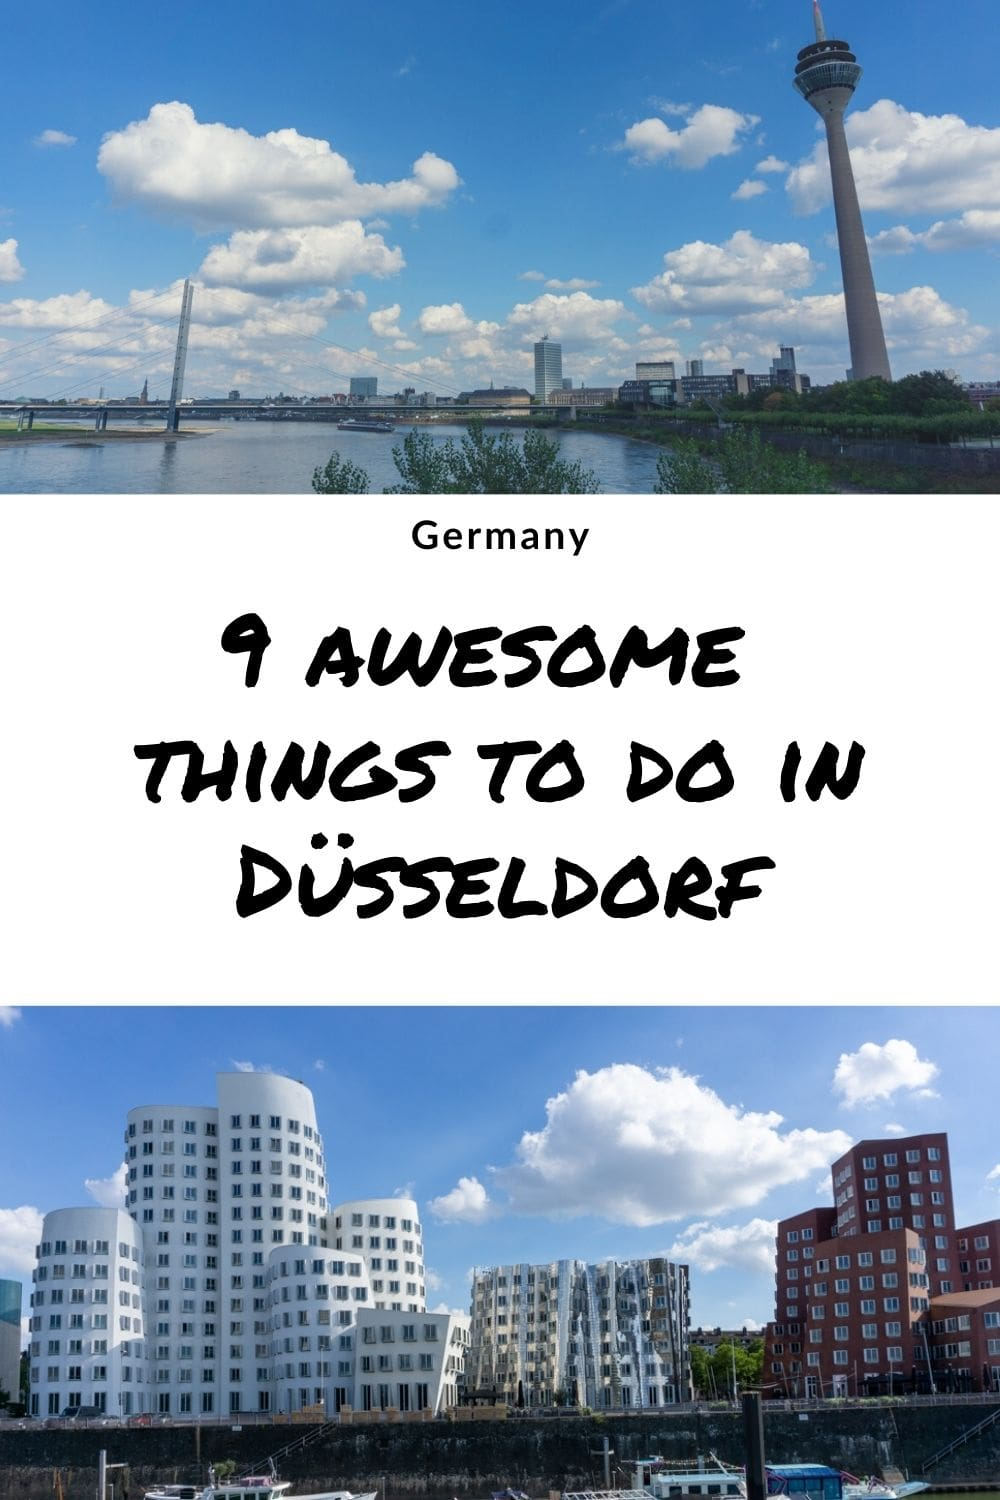 Awesome things to do in Dusseldorf - Germany